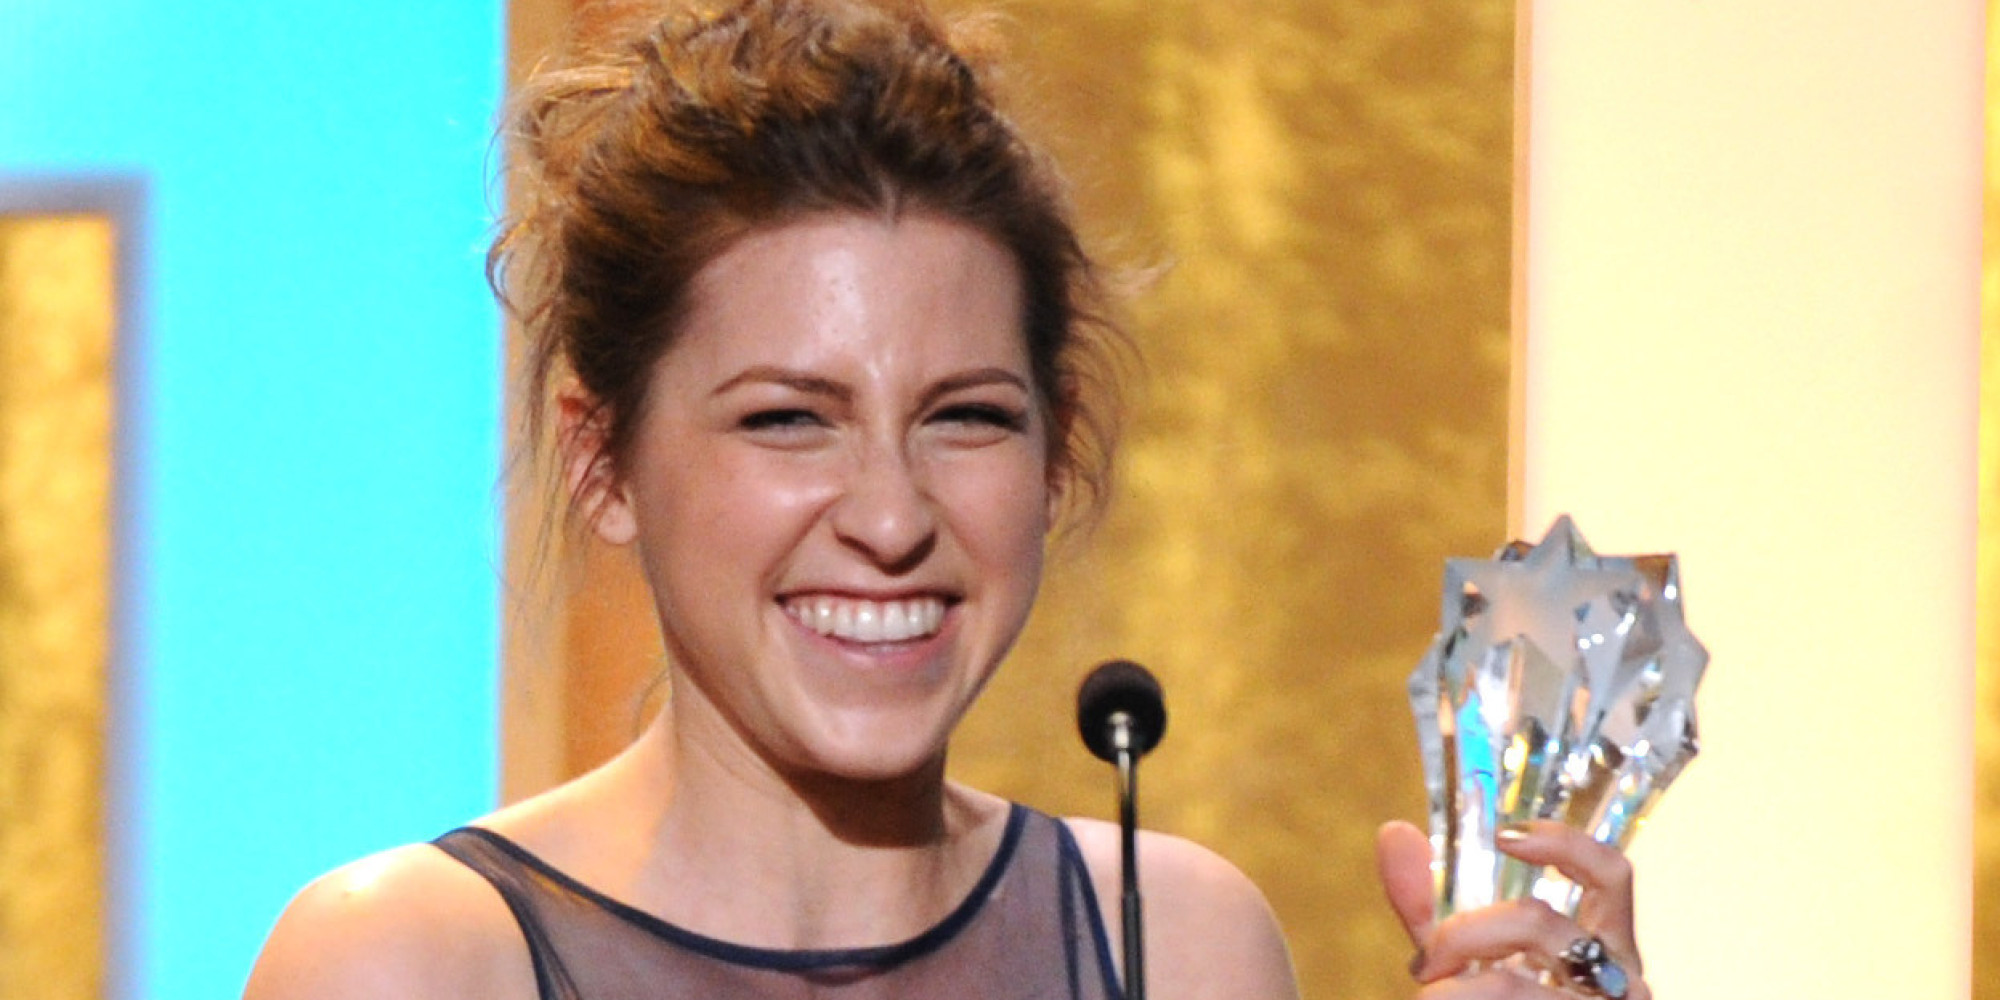 Eden Sher youtube